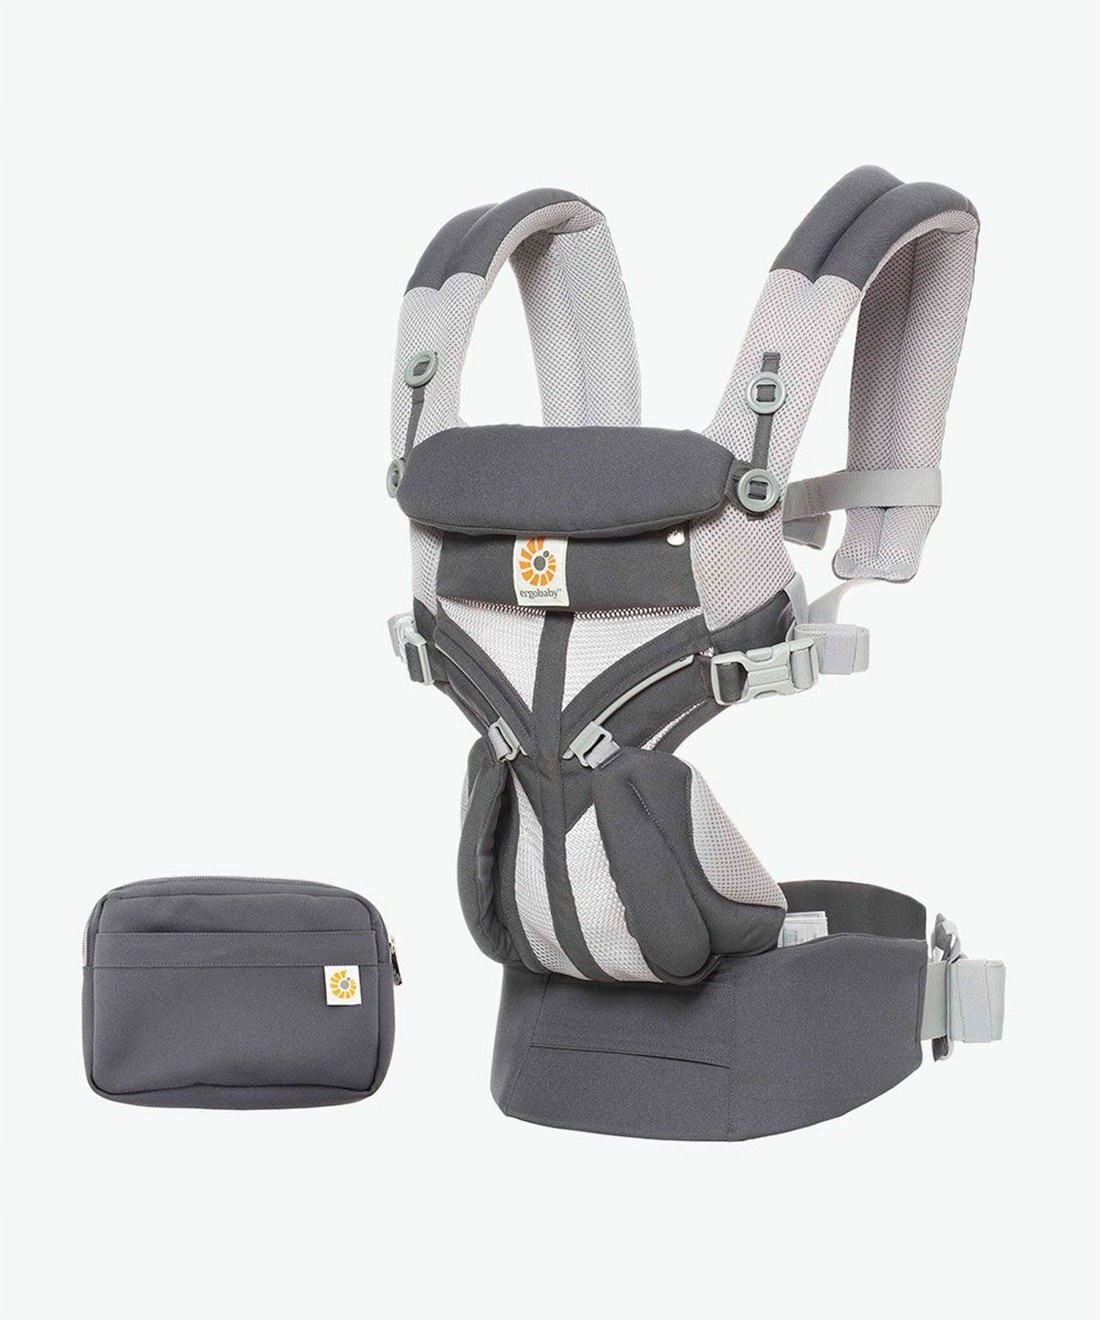 Ergobaby Omni 360 Baby Carrier - Cool Air Mesh Carbon Grey